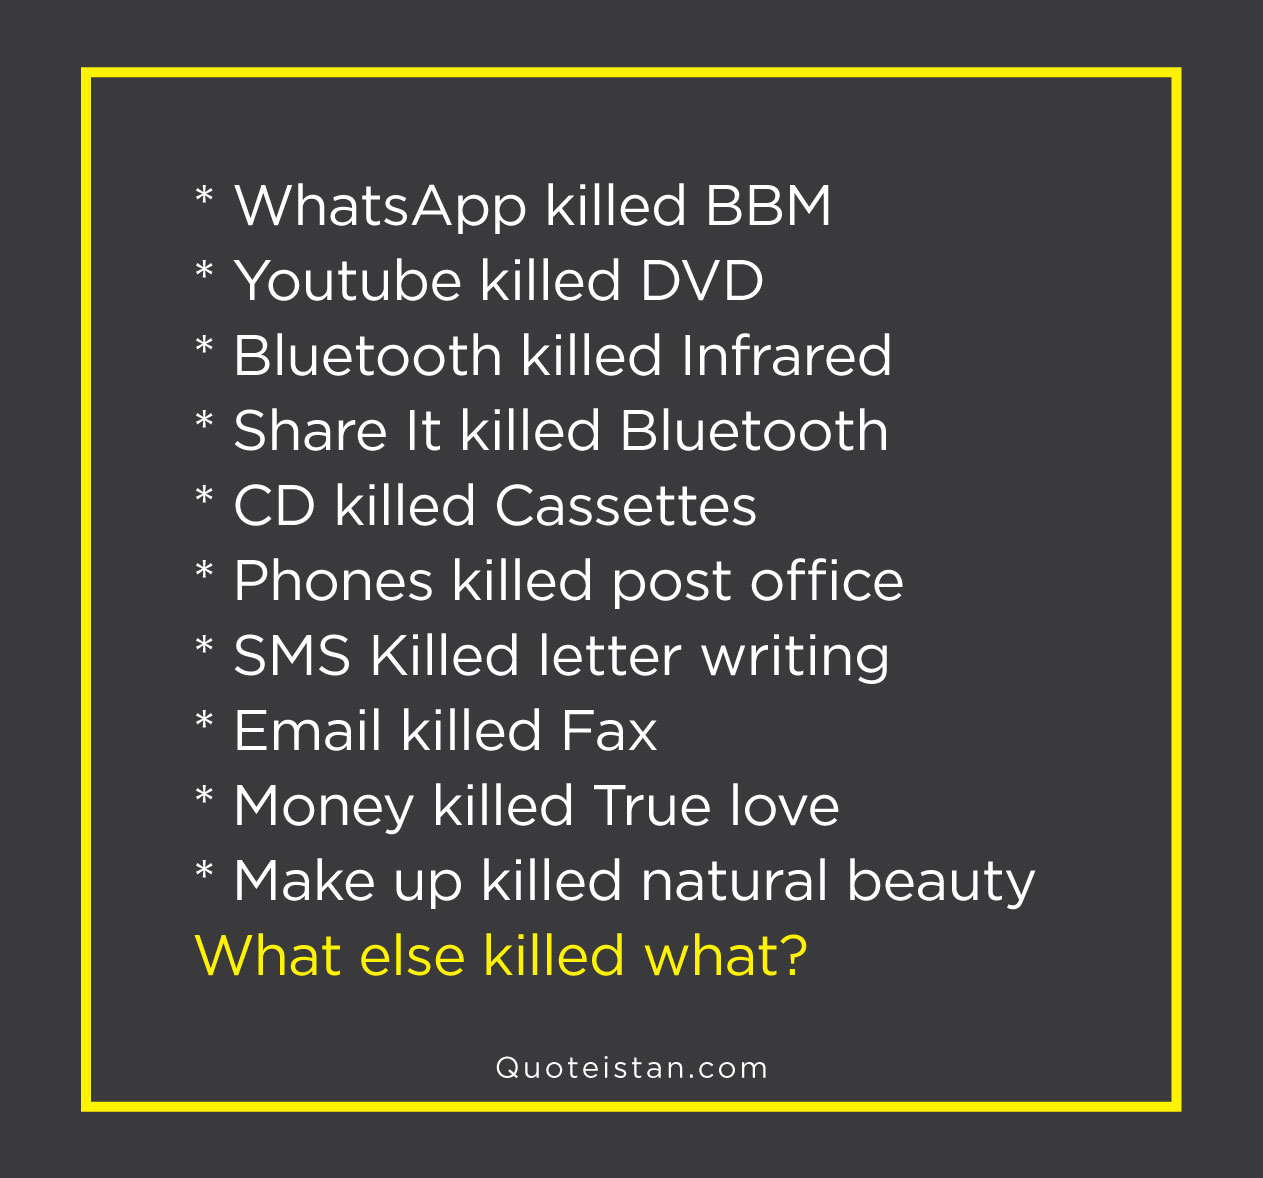 * WhatsApp killed BBM  * Youtube killed DVD * Bluetooth killed Infrared * Share It killed Bluetooth * CD killed Cassettes * Phones killed post office * SMS Killed letter writing * Email killed Fax * Money killed True love * Make up killed natural beauty What else killed what?